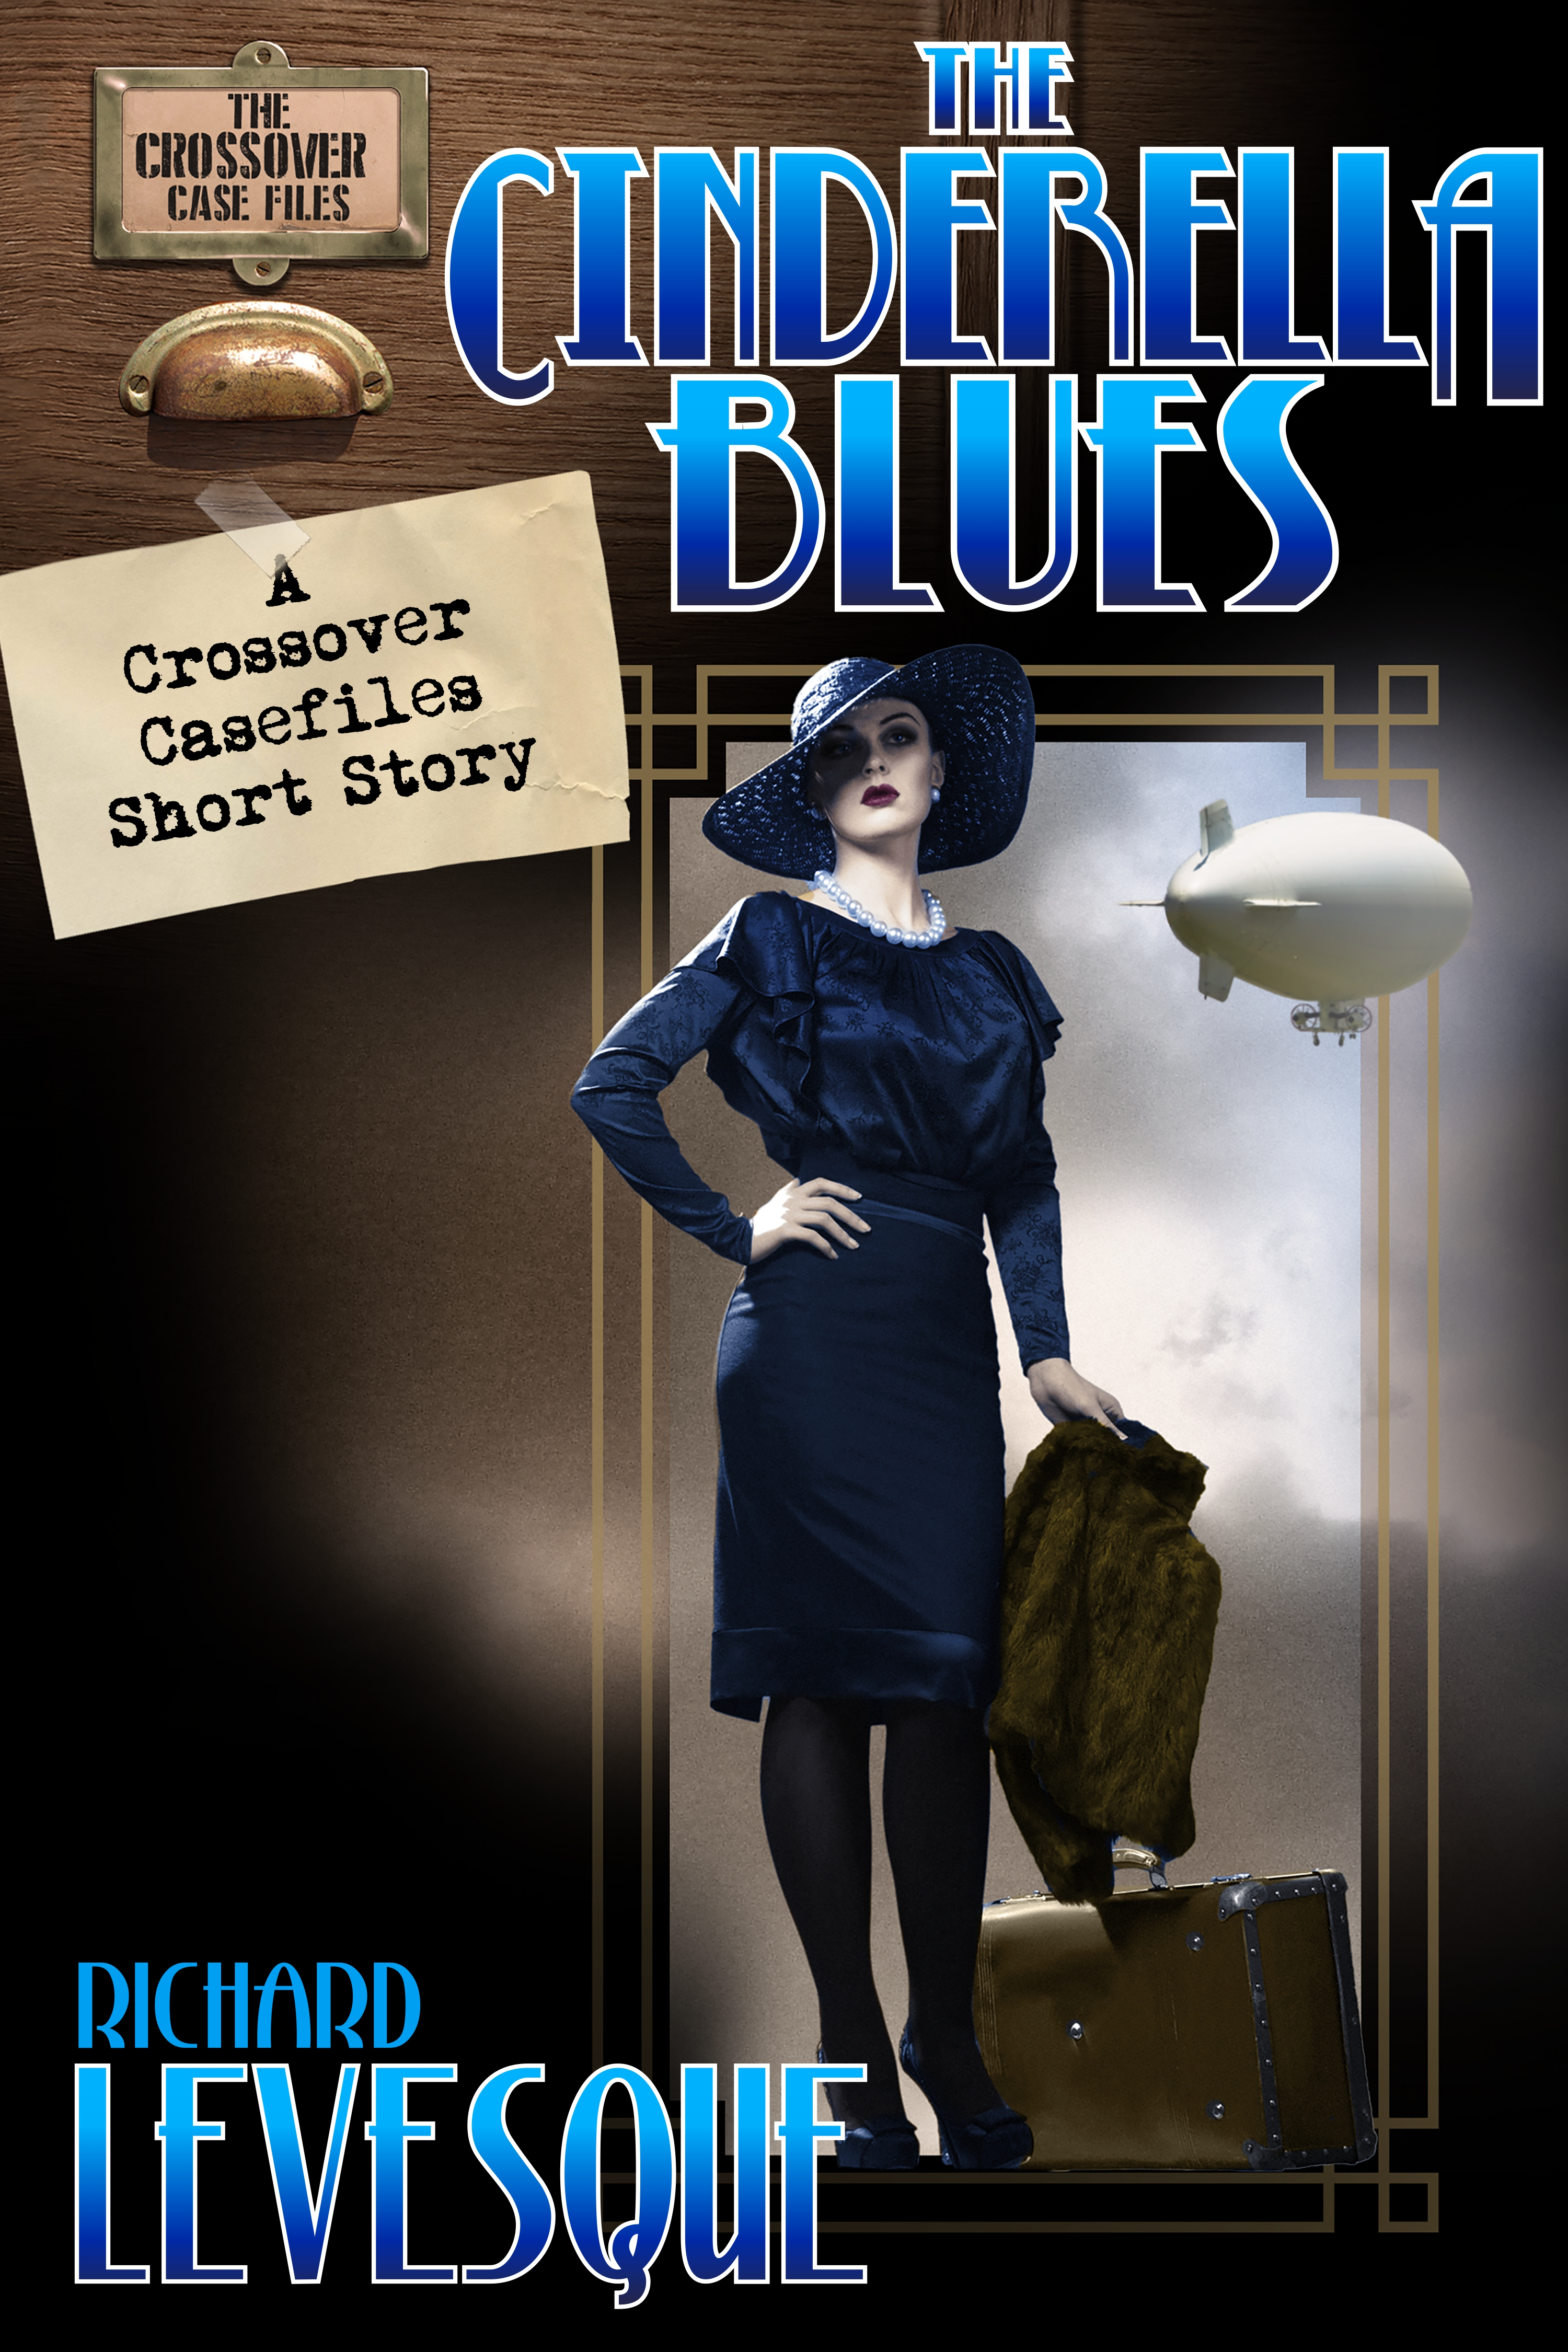 The Cinderella Blues by Richard Levesque